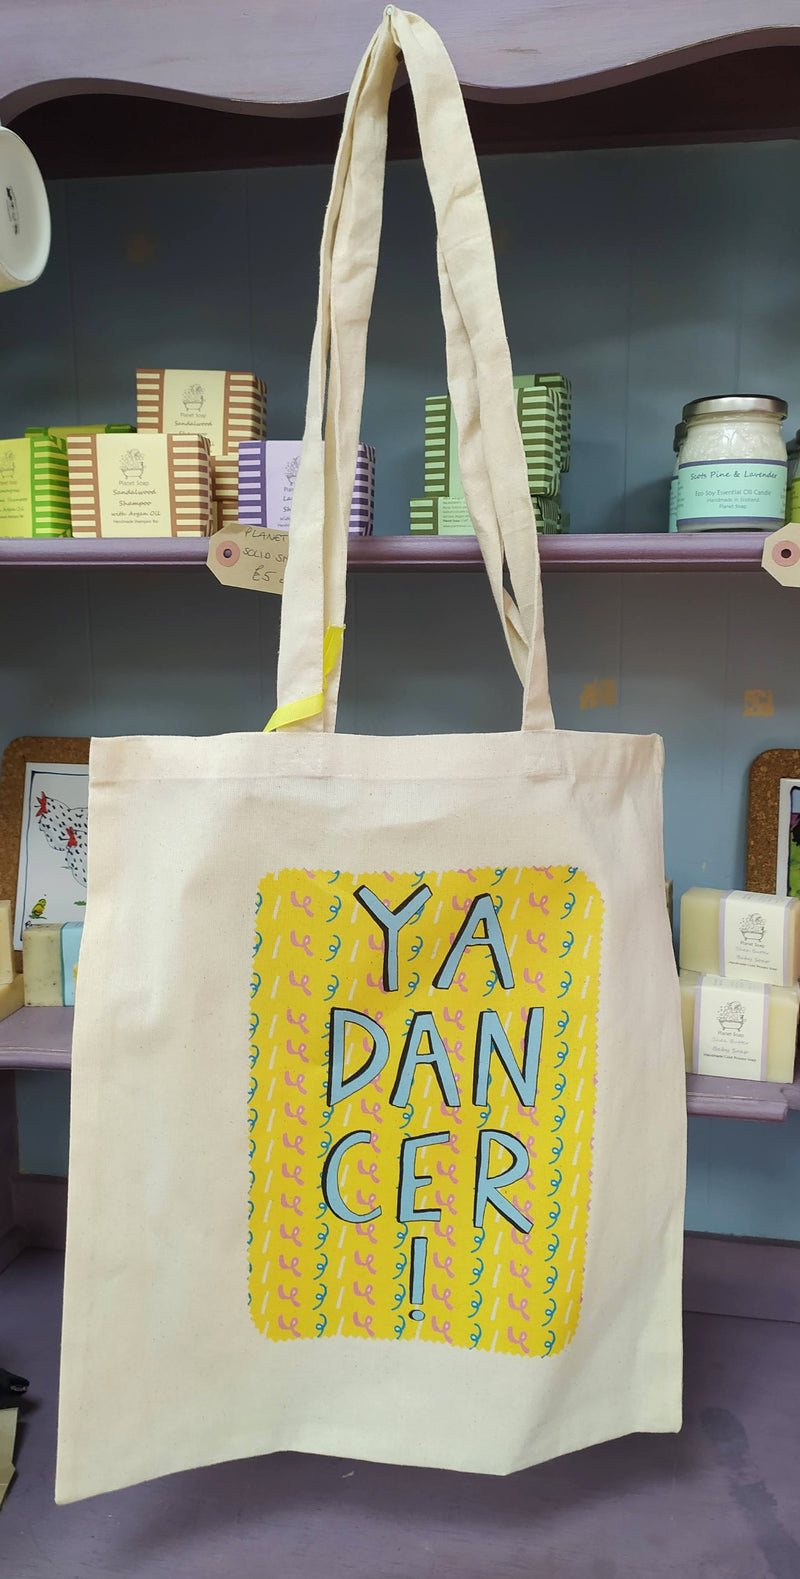 Tote bag - Ya dancer